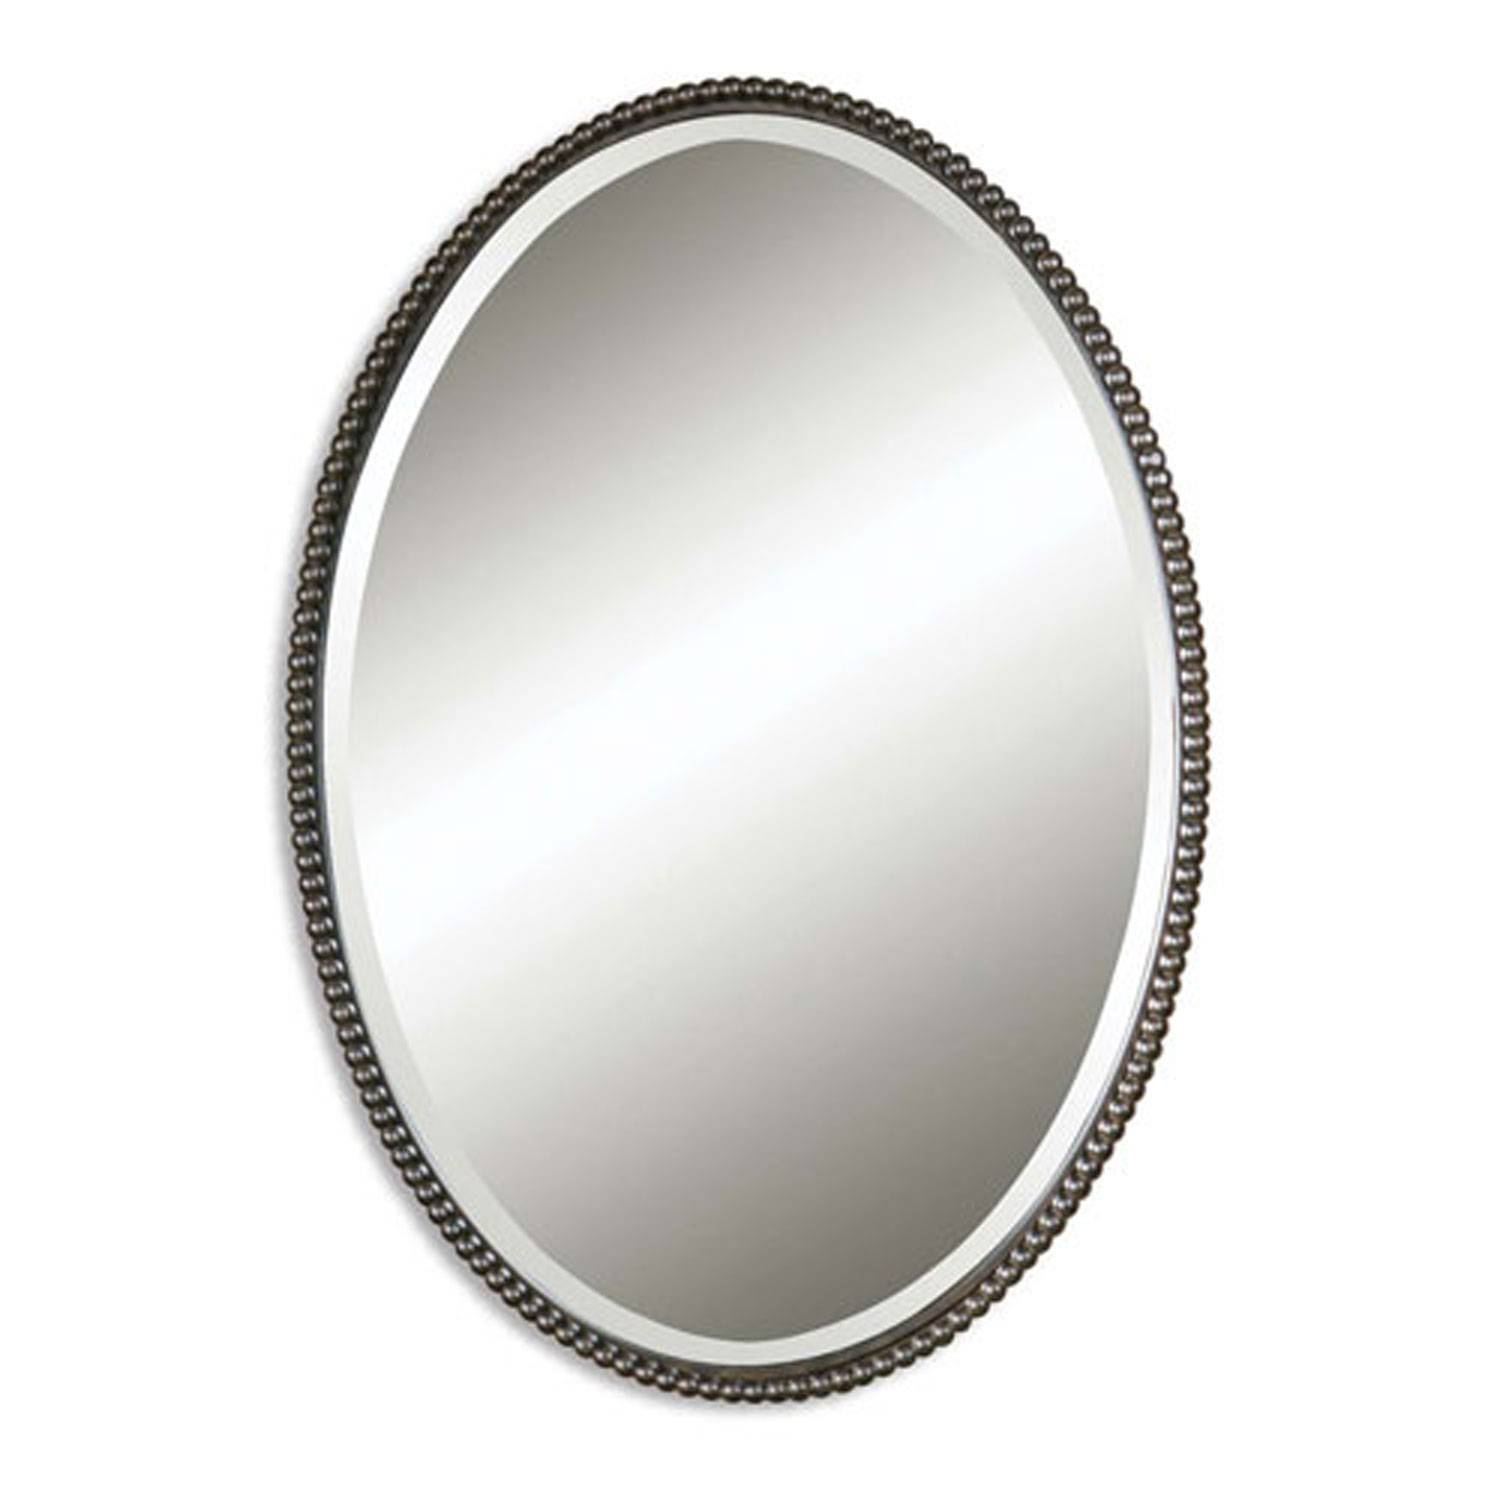 Sherise Oval Mirror Uttermost Wall Mirror Mirrors Home Decor within Black Oval Wall Mirrors (Image 18 of 25)